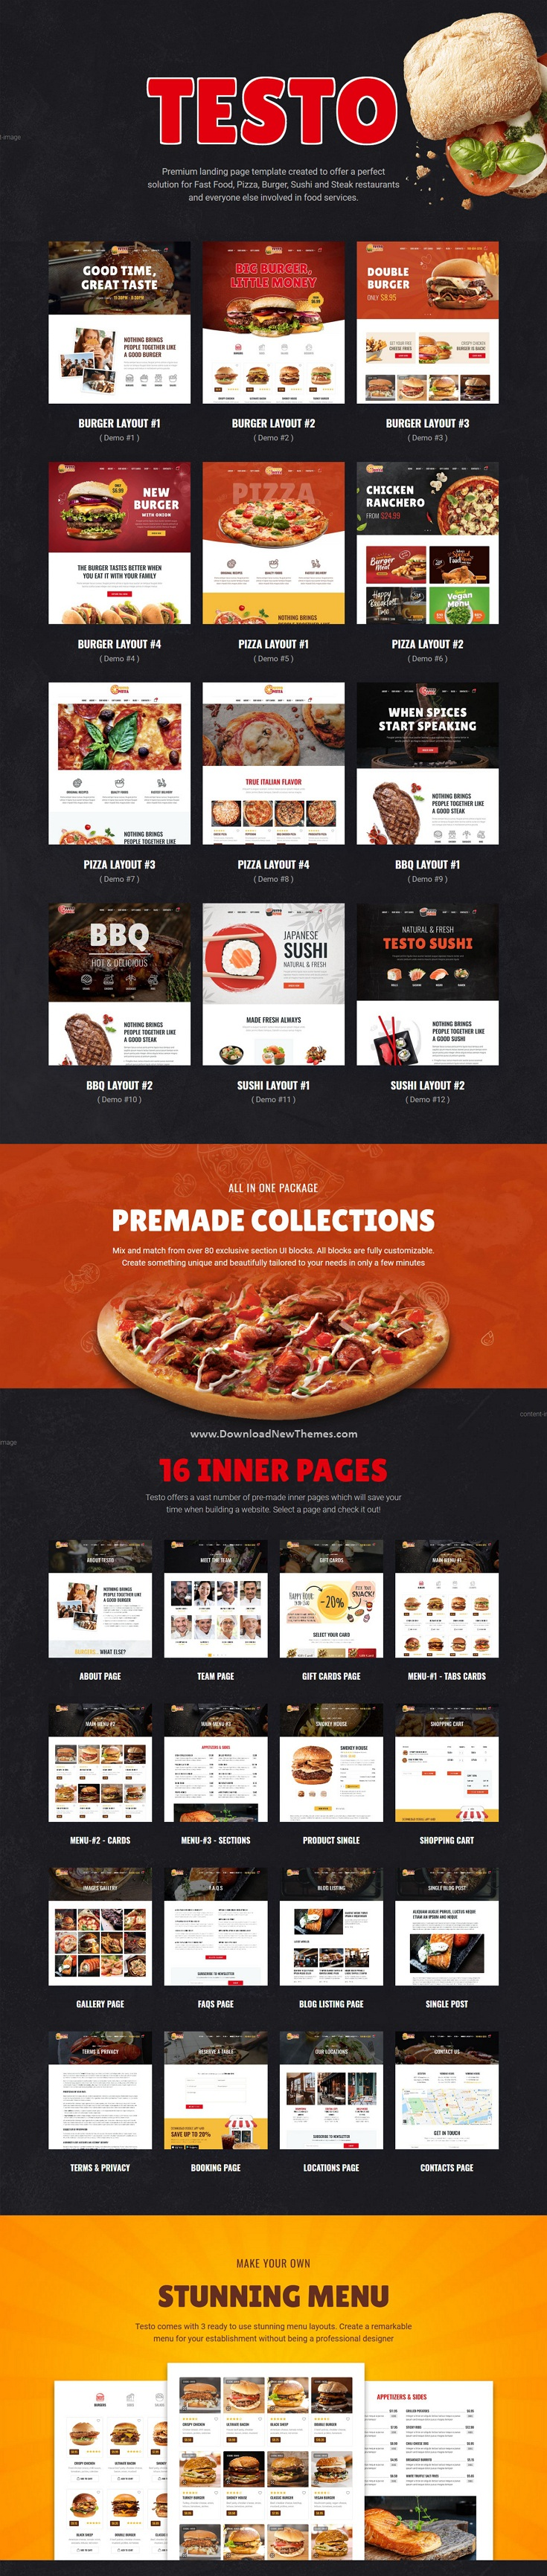 Pizza Caffe Restaurant Website Template